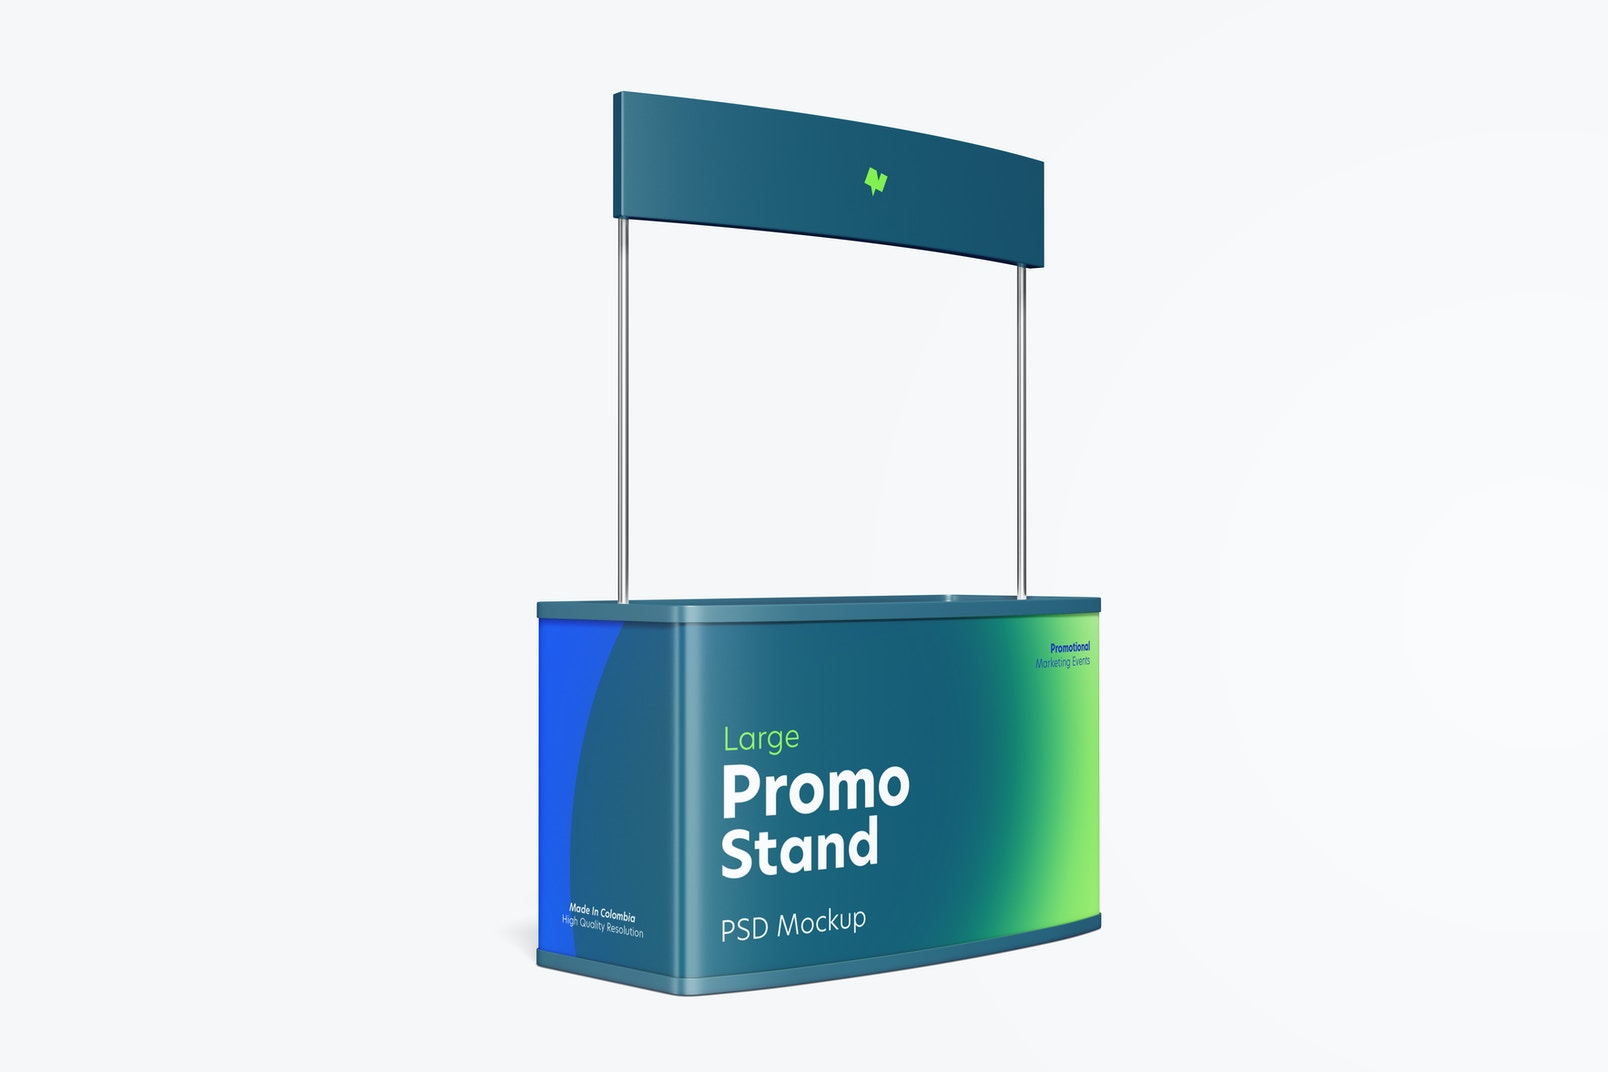 Large Promo Stand Mockup, Right View